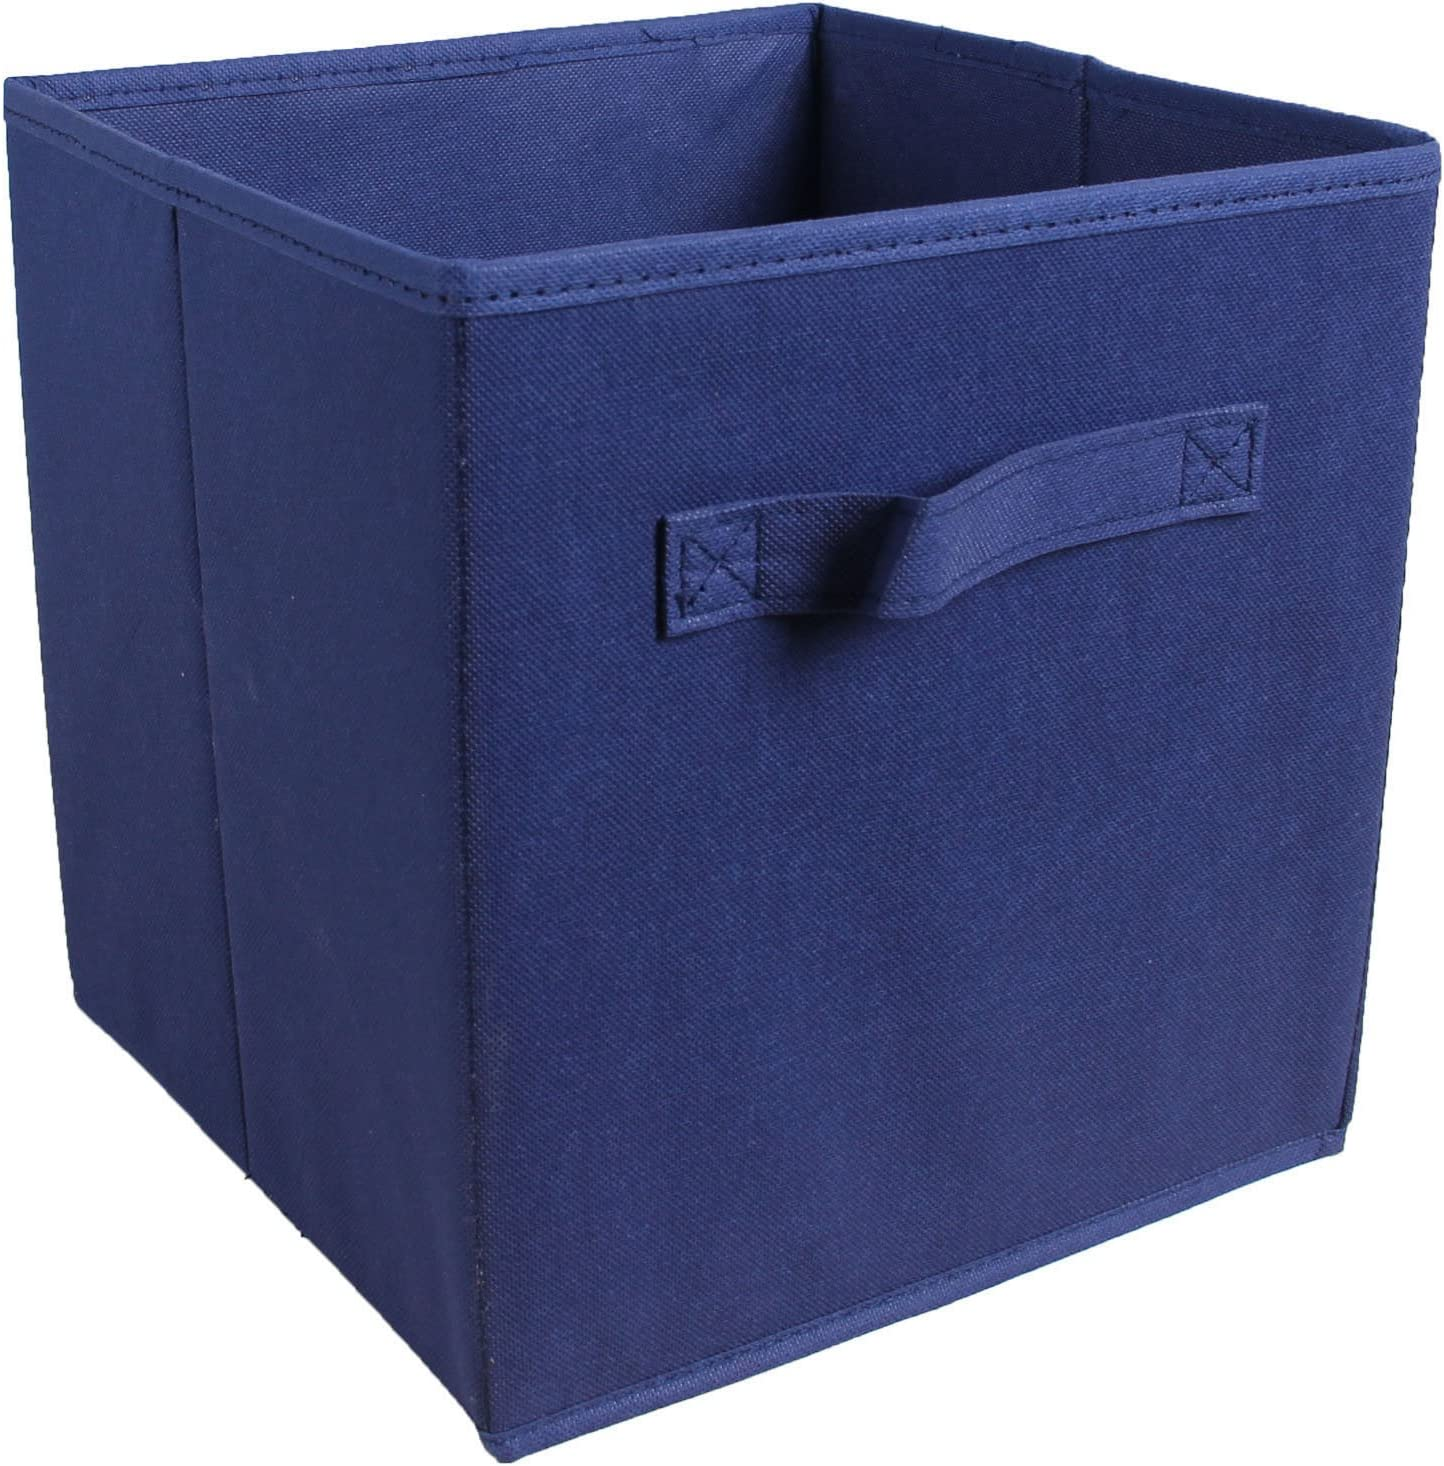 New product SAVICOS 6 Foldable Lowest price challenge Storage Collapsible Clothes Box Home Organize